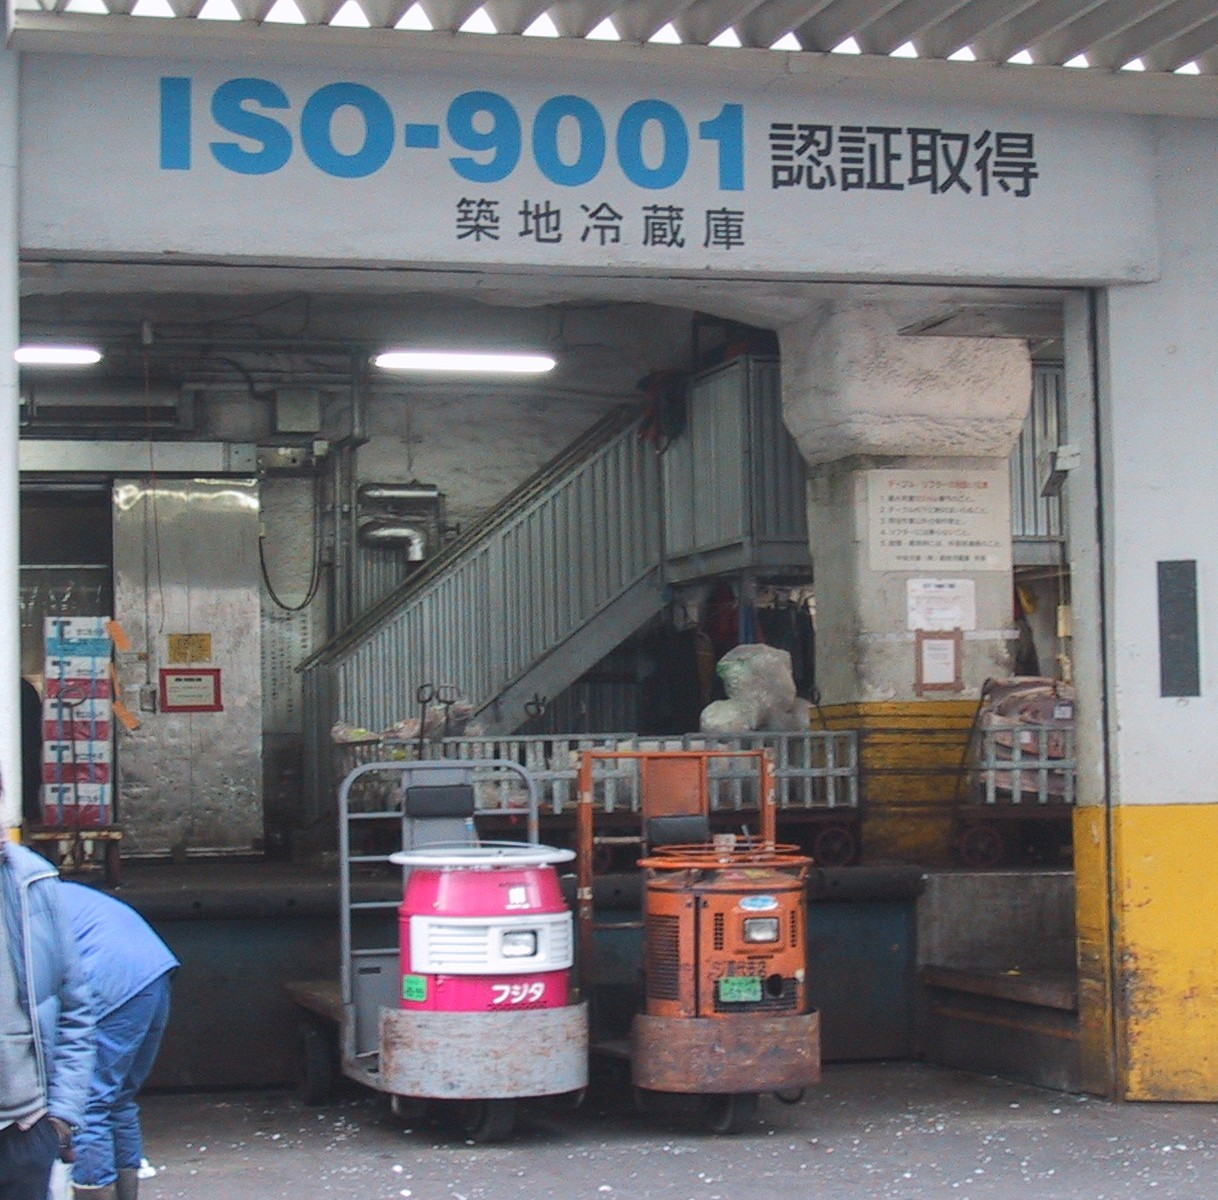 Storefront advertising ISO 9001 certification